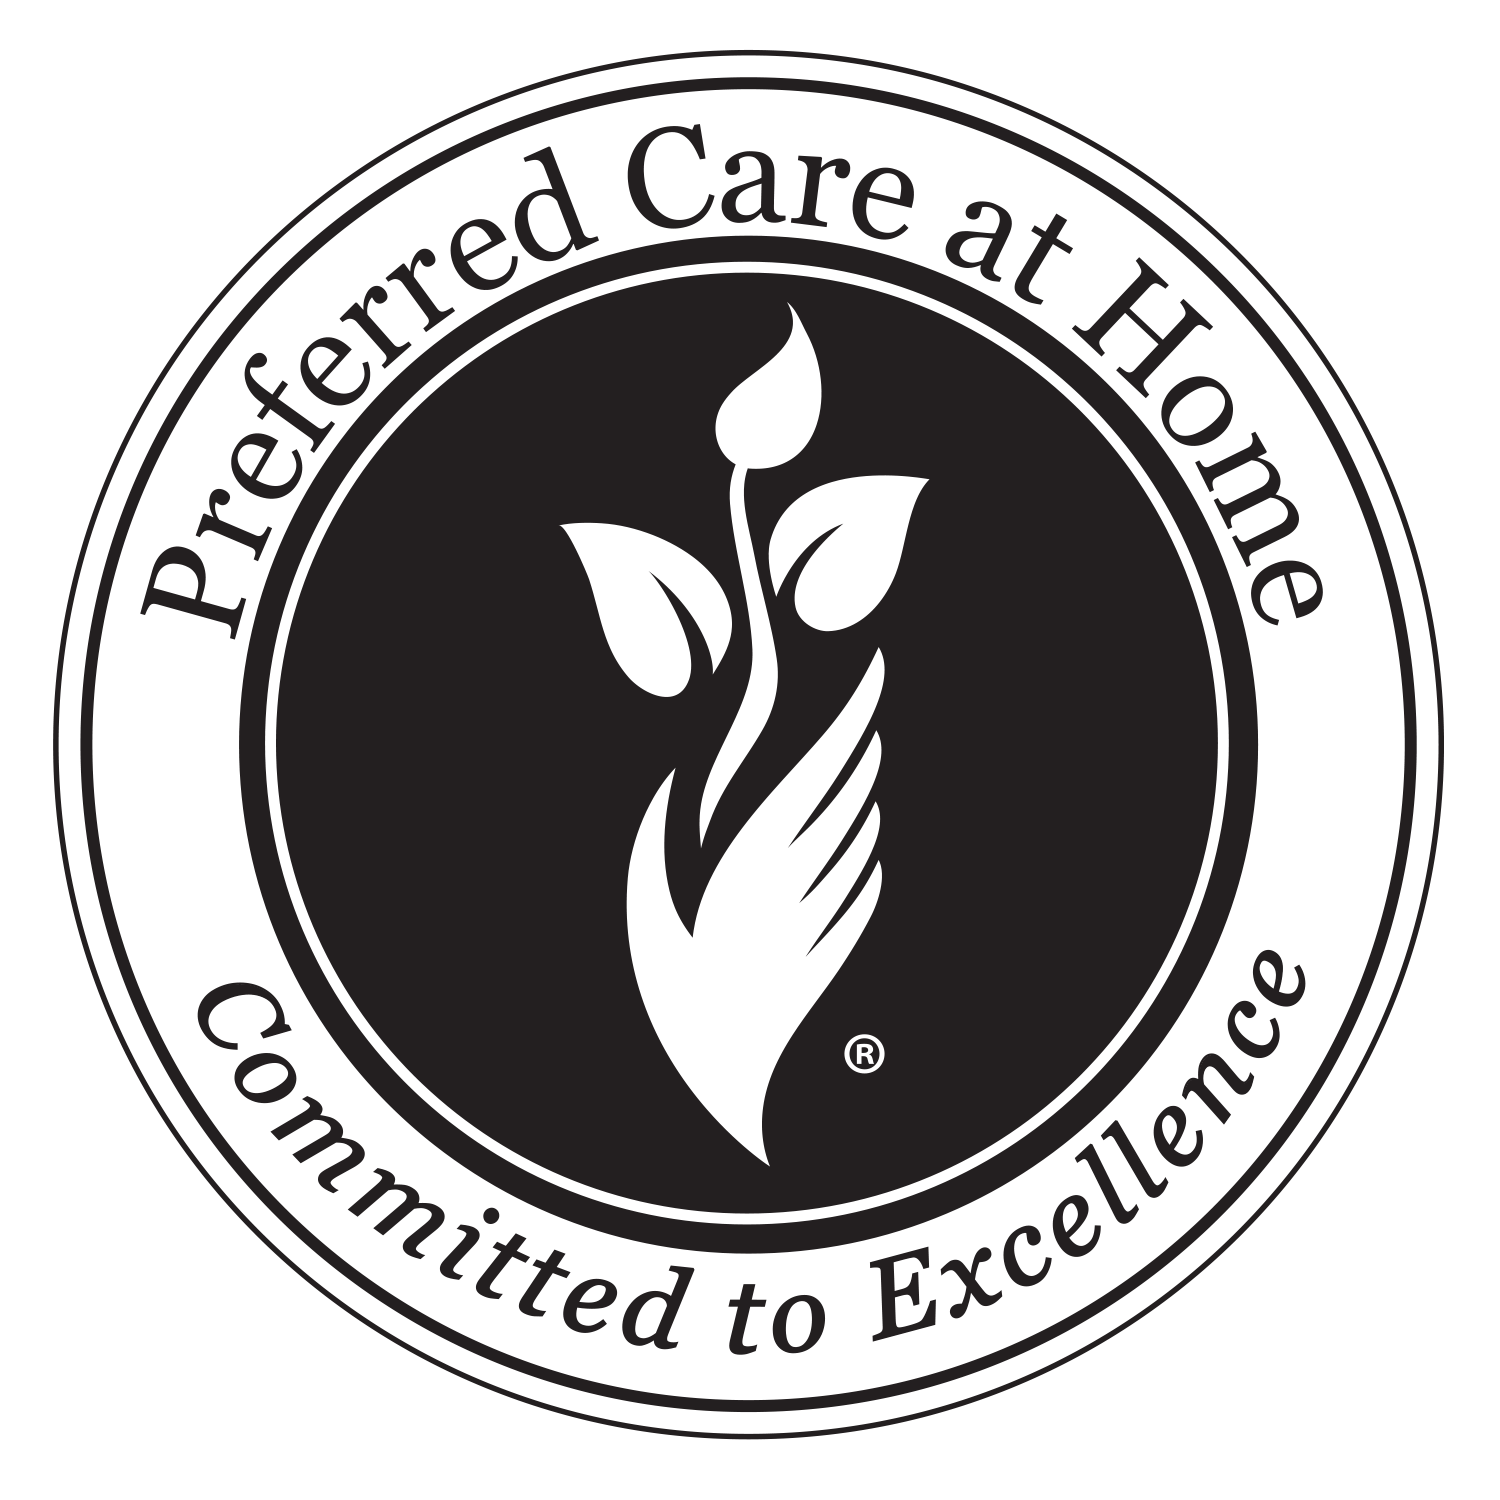 Preferred Care at Home of Cape Coral & Fort Myers image 4